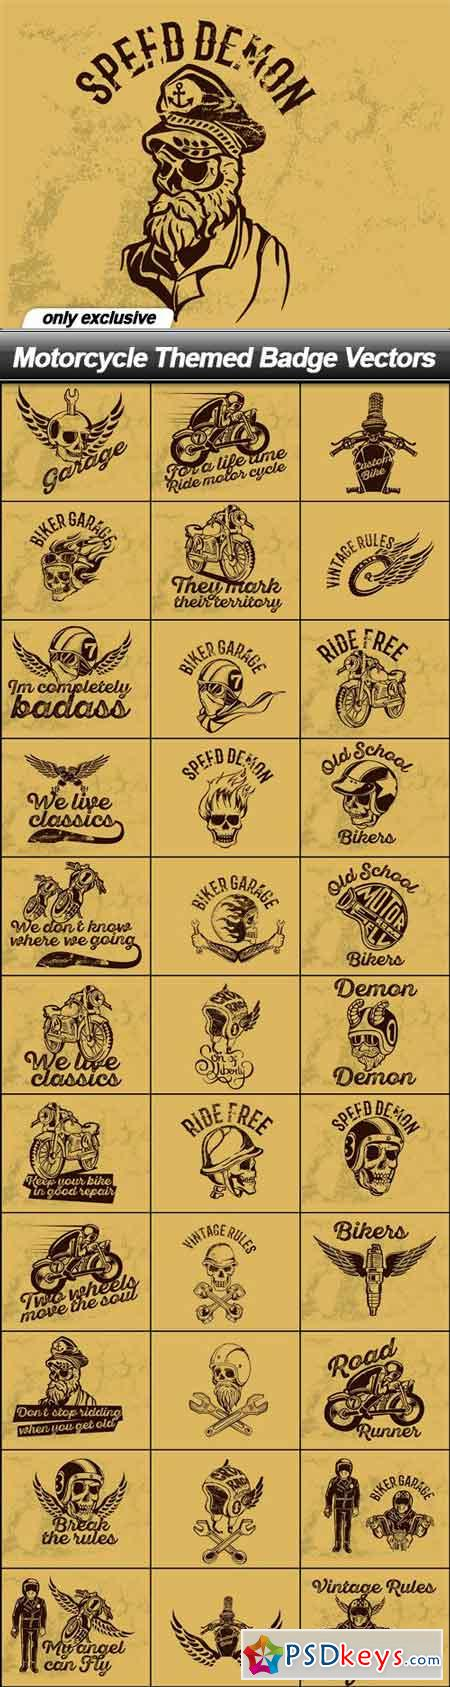 Motorcycle Themed Badge Vectors - 100 EPS